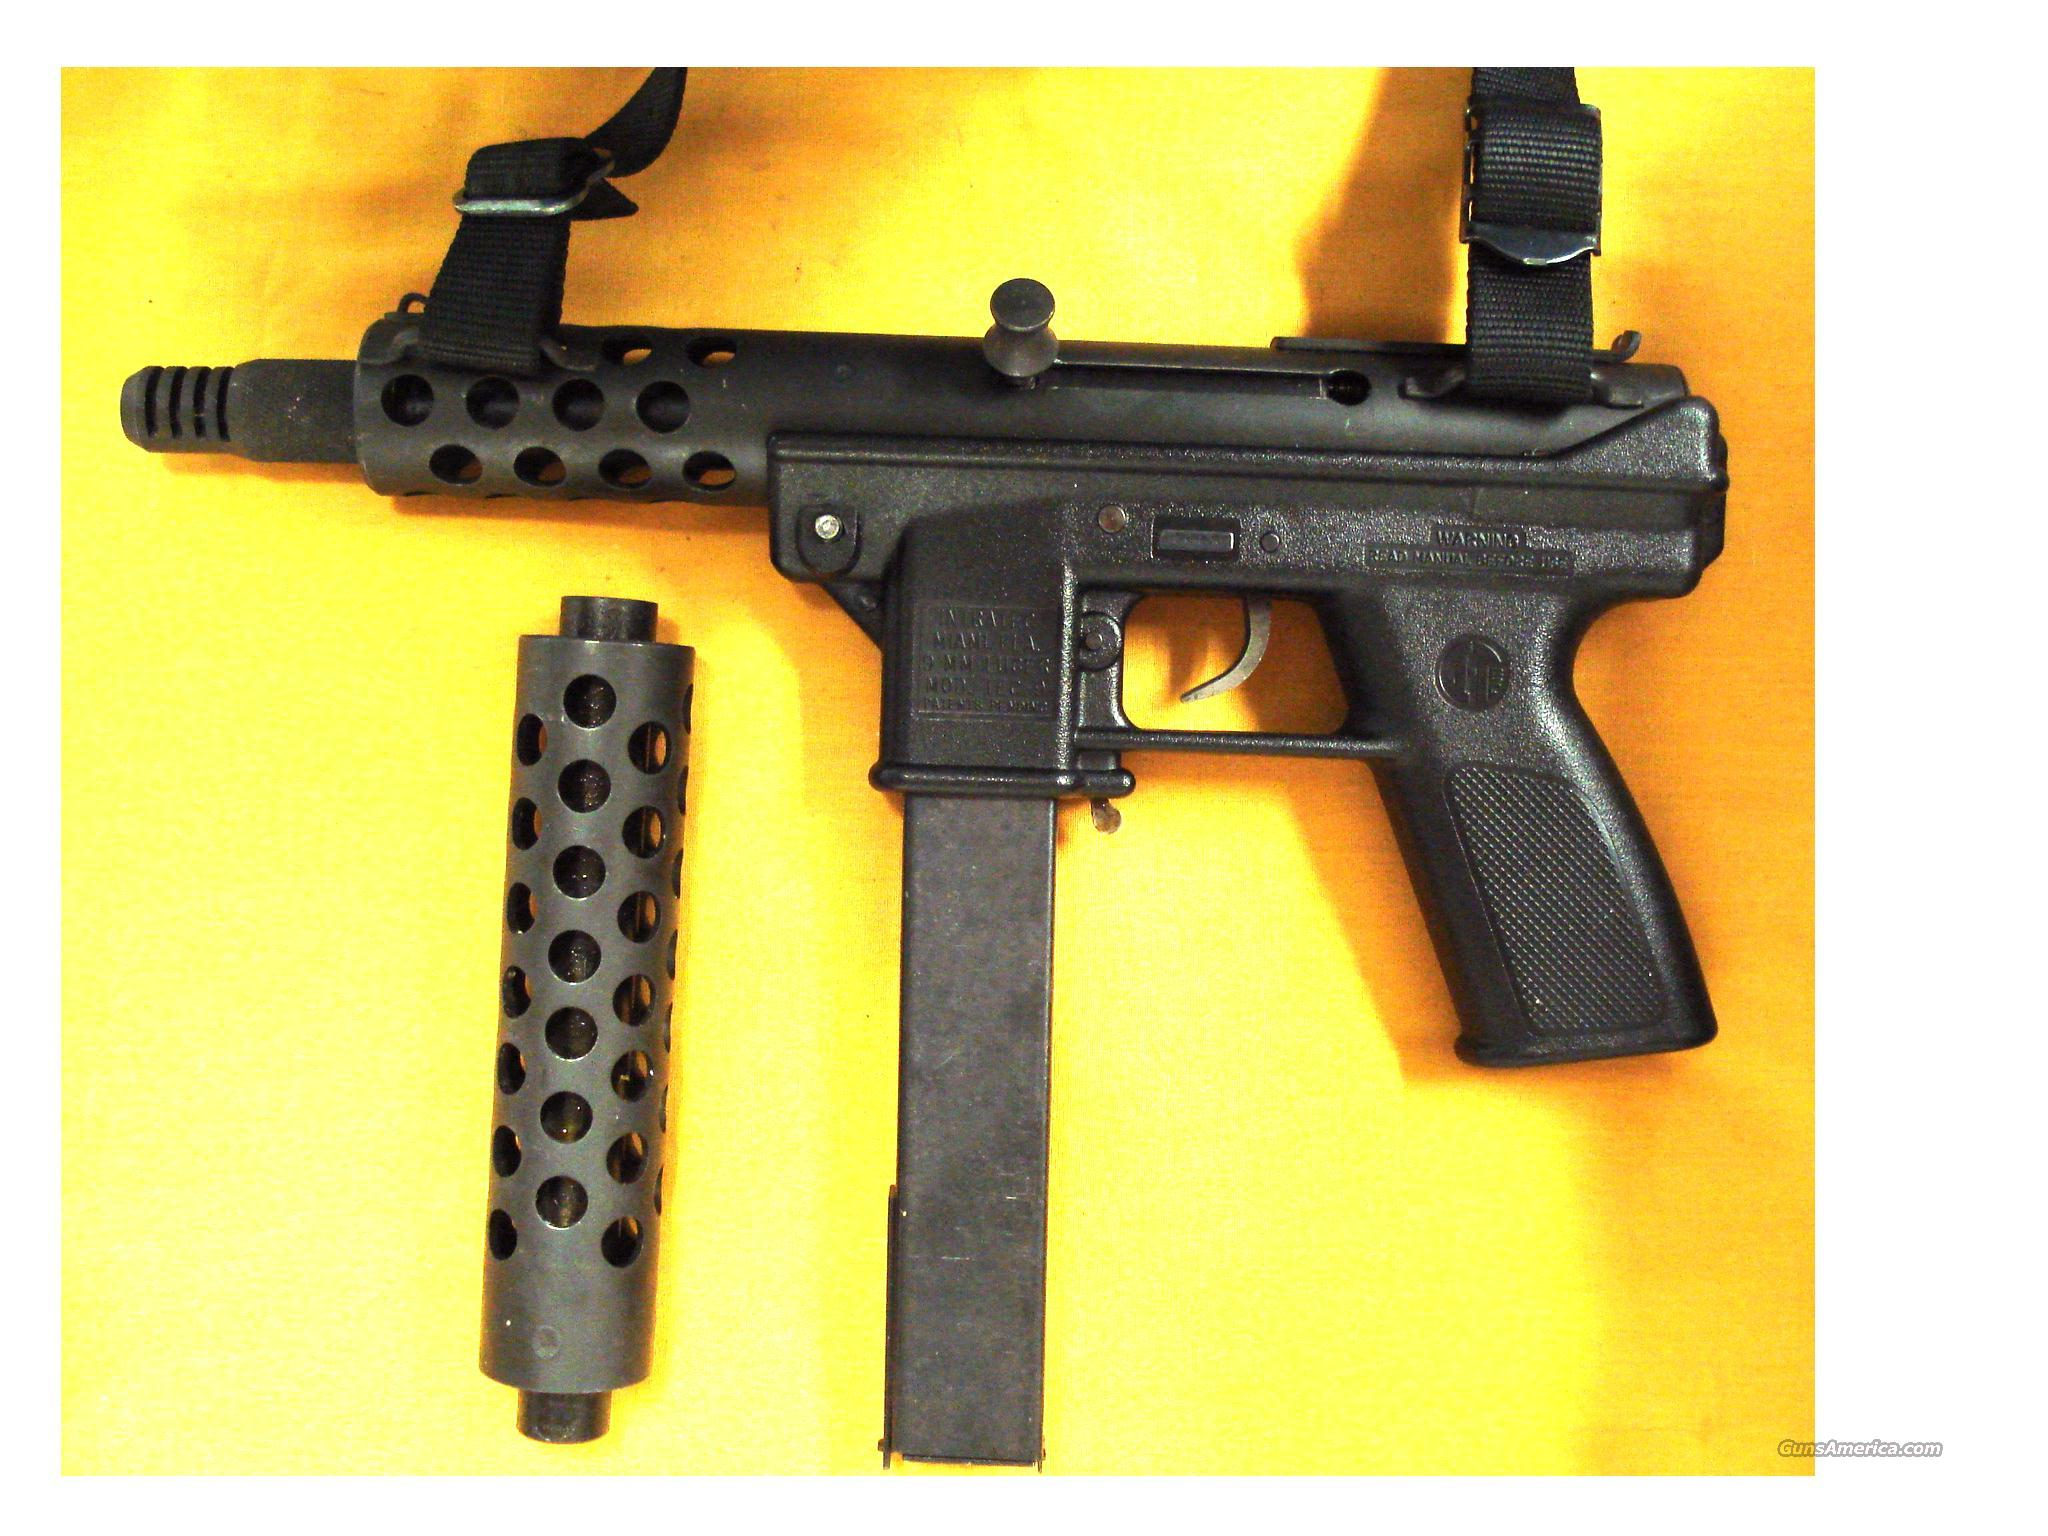 "INTRATEC TEC 9 9MM 5 1/2""BARREL  Guns > Pistols > Intratec Pistols"